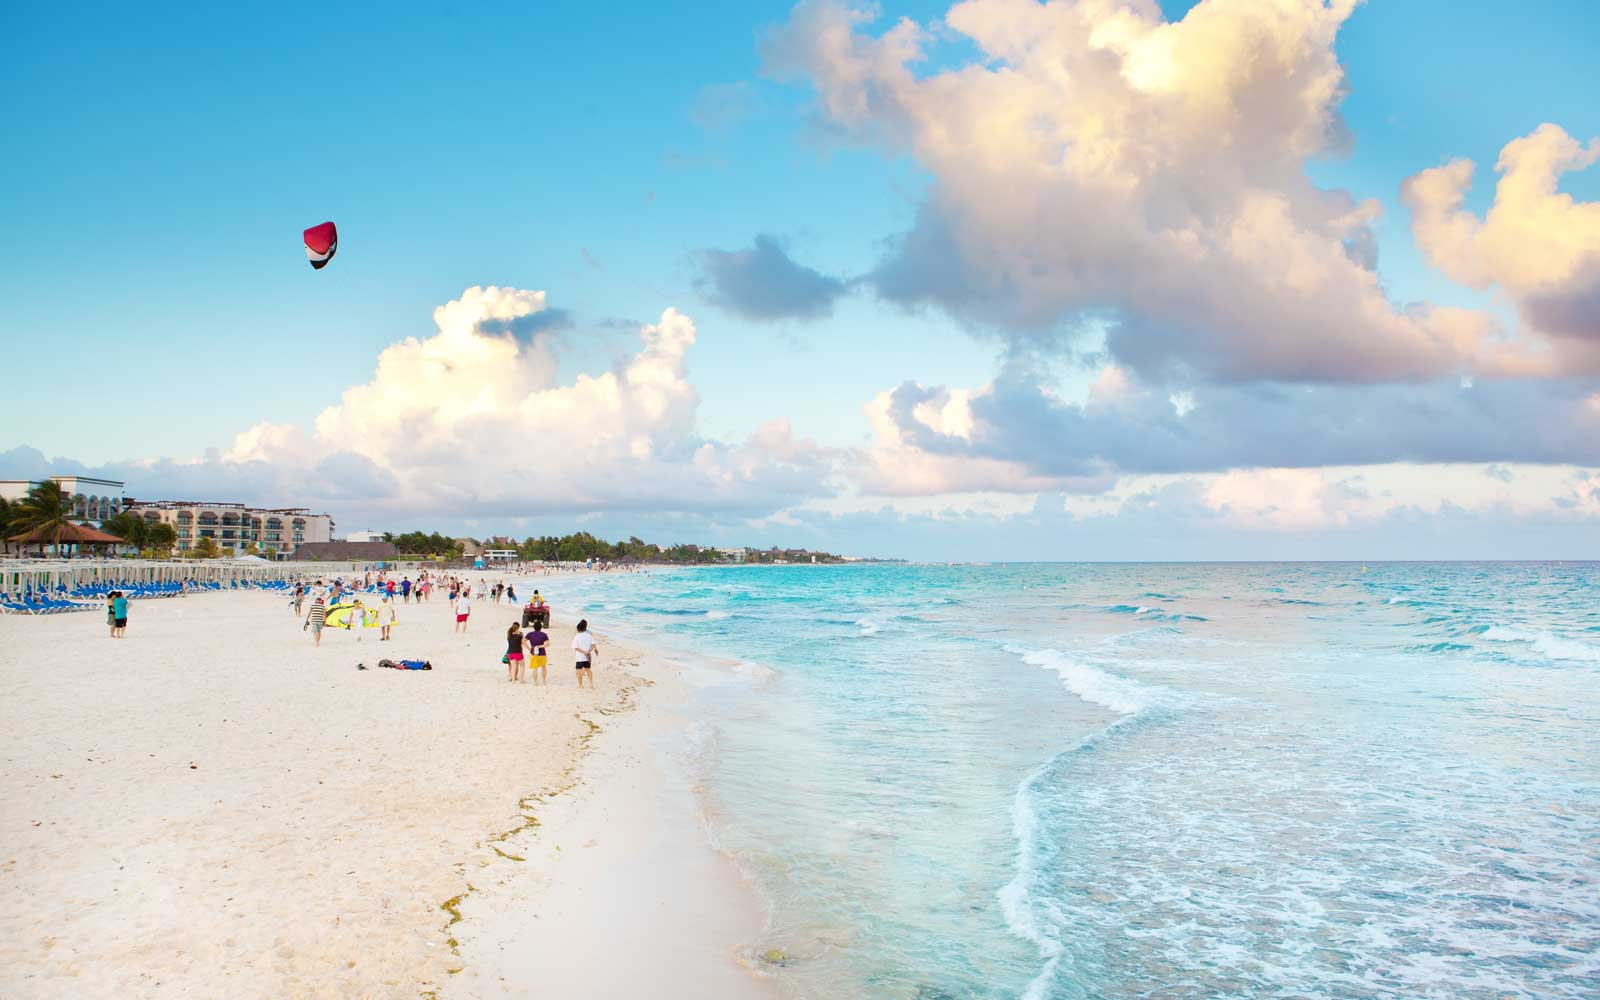 Beachgoers at Playa del Carmen, in Mexico